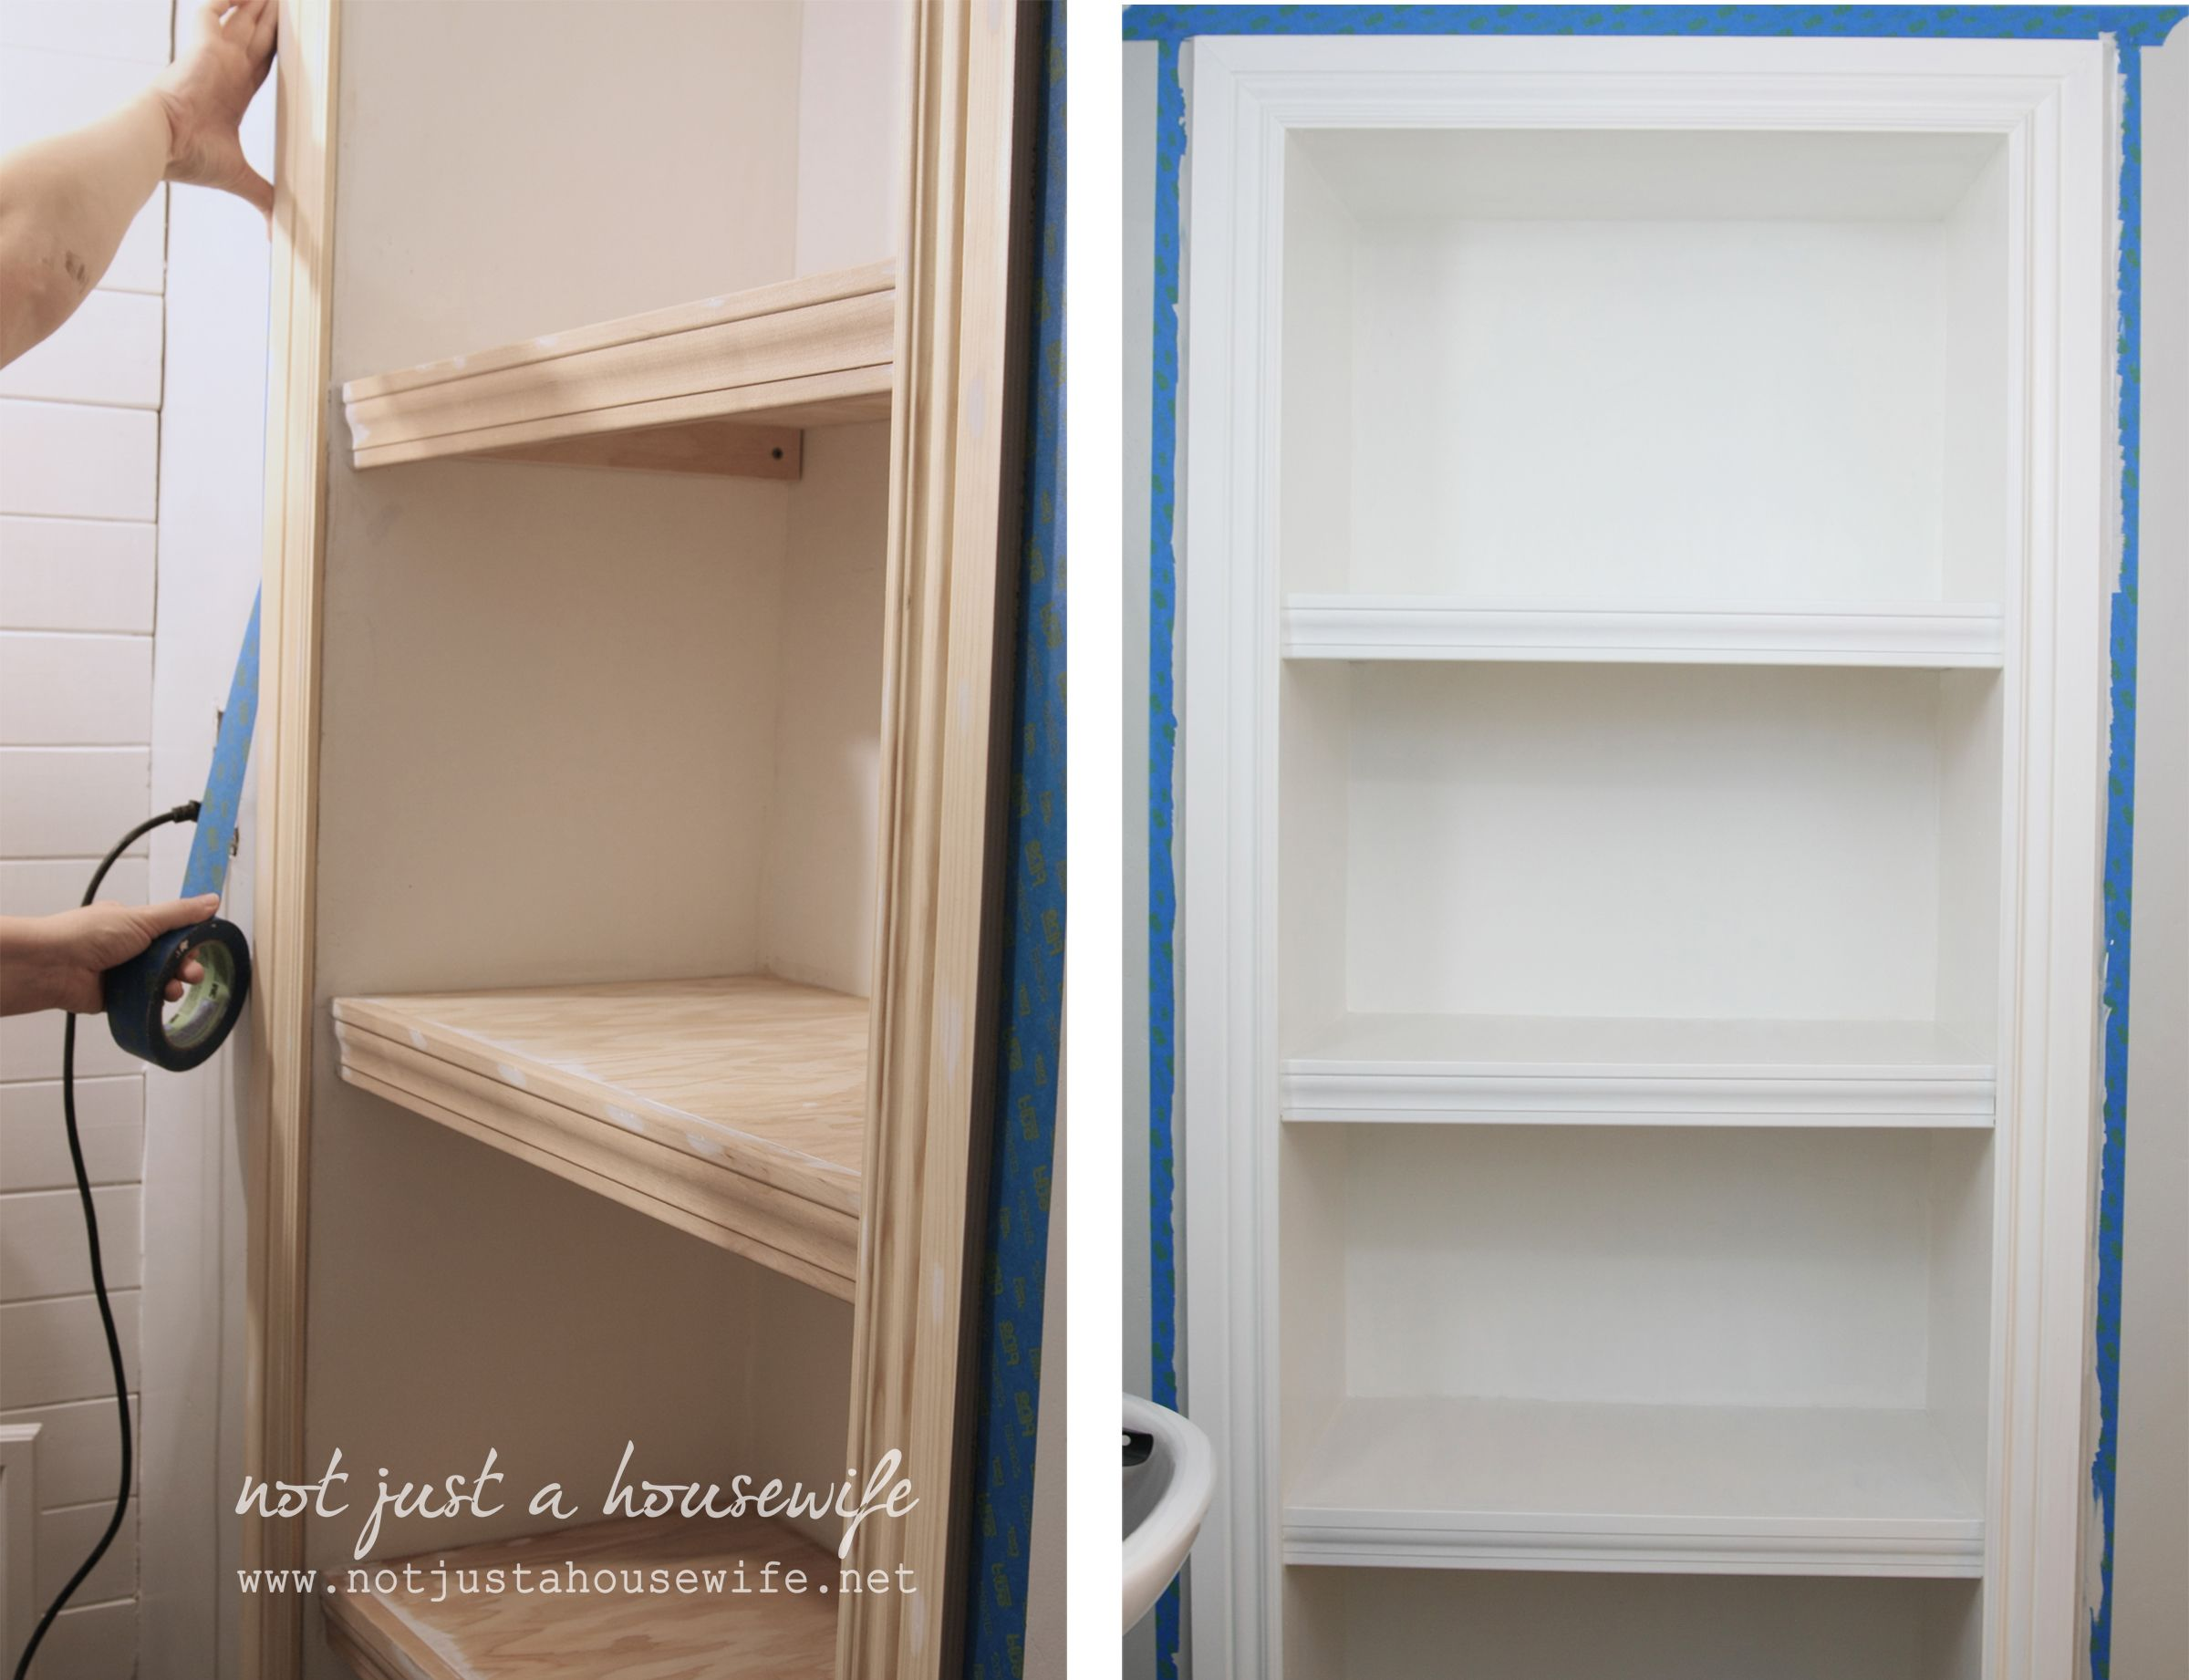 Painting The Finished Wall-inserted Bathroom Shelves